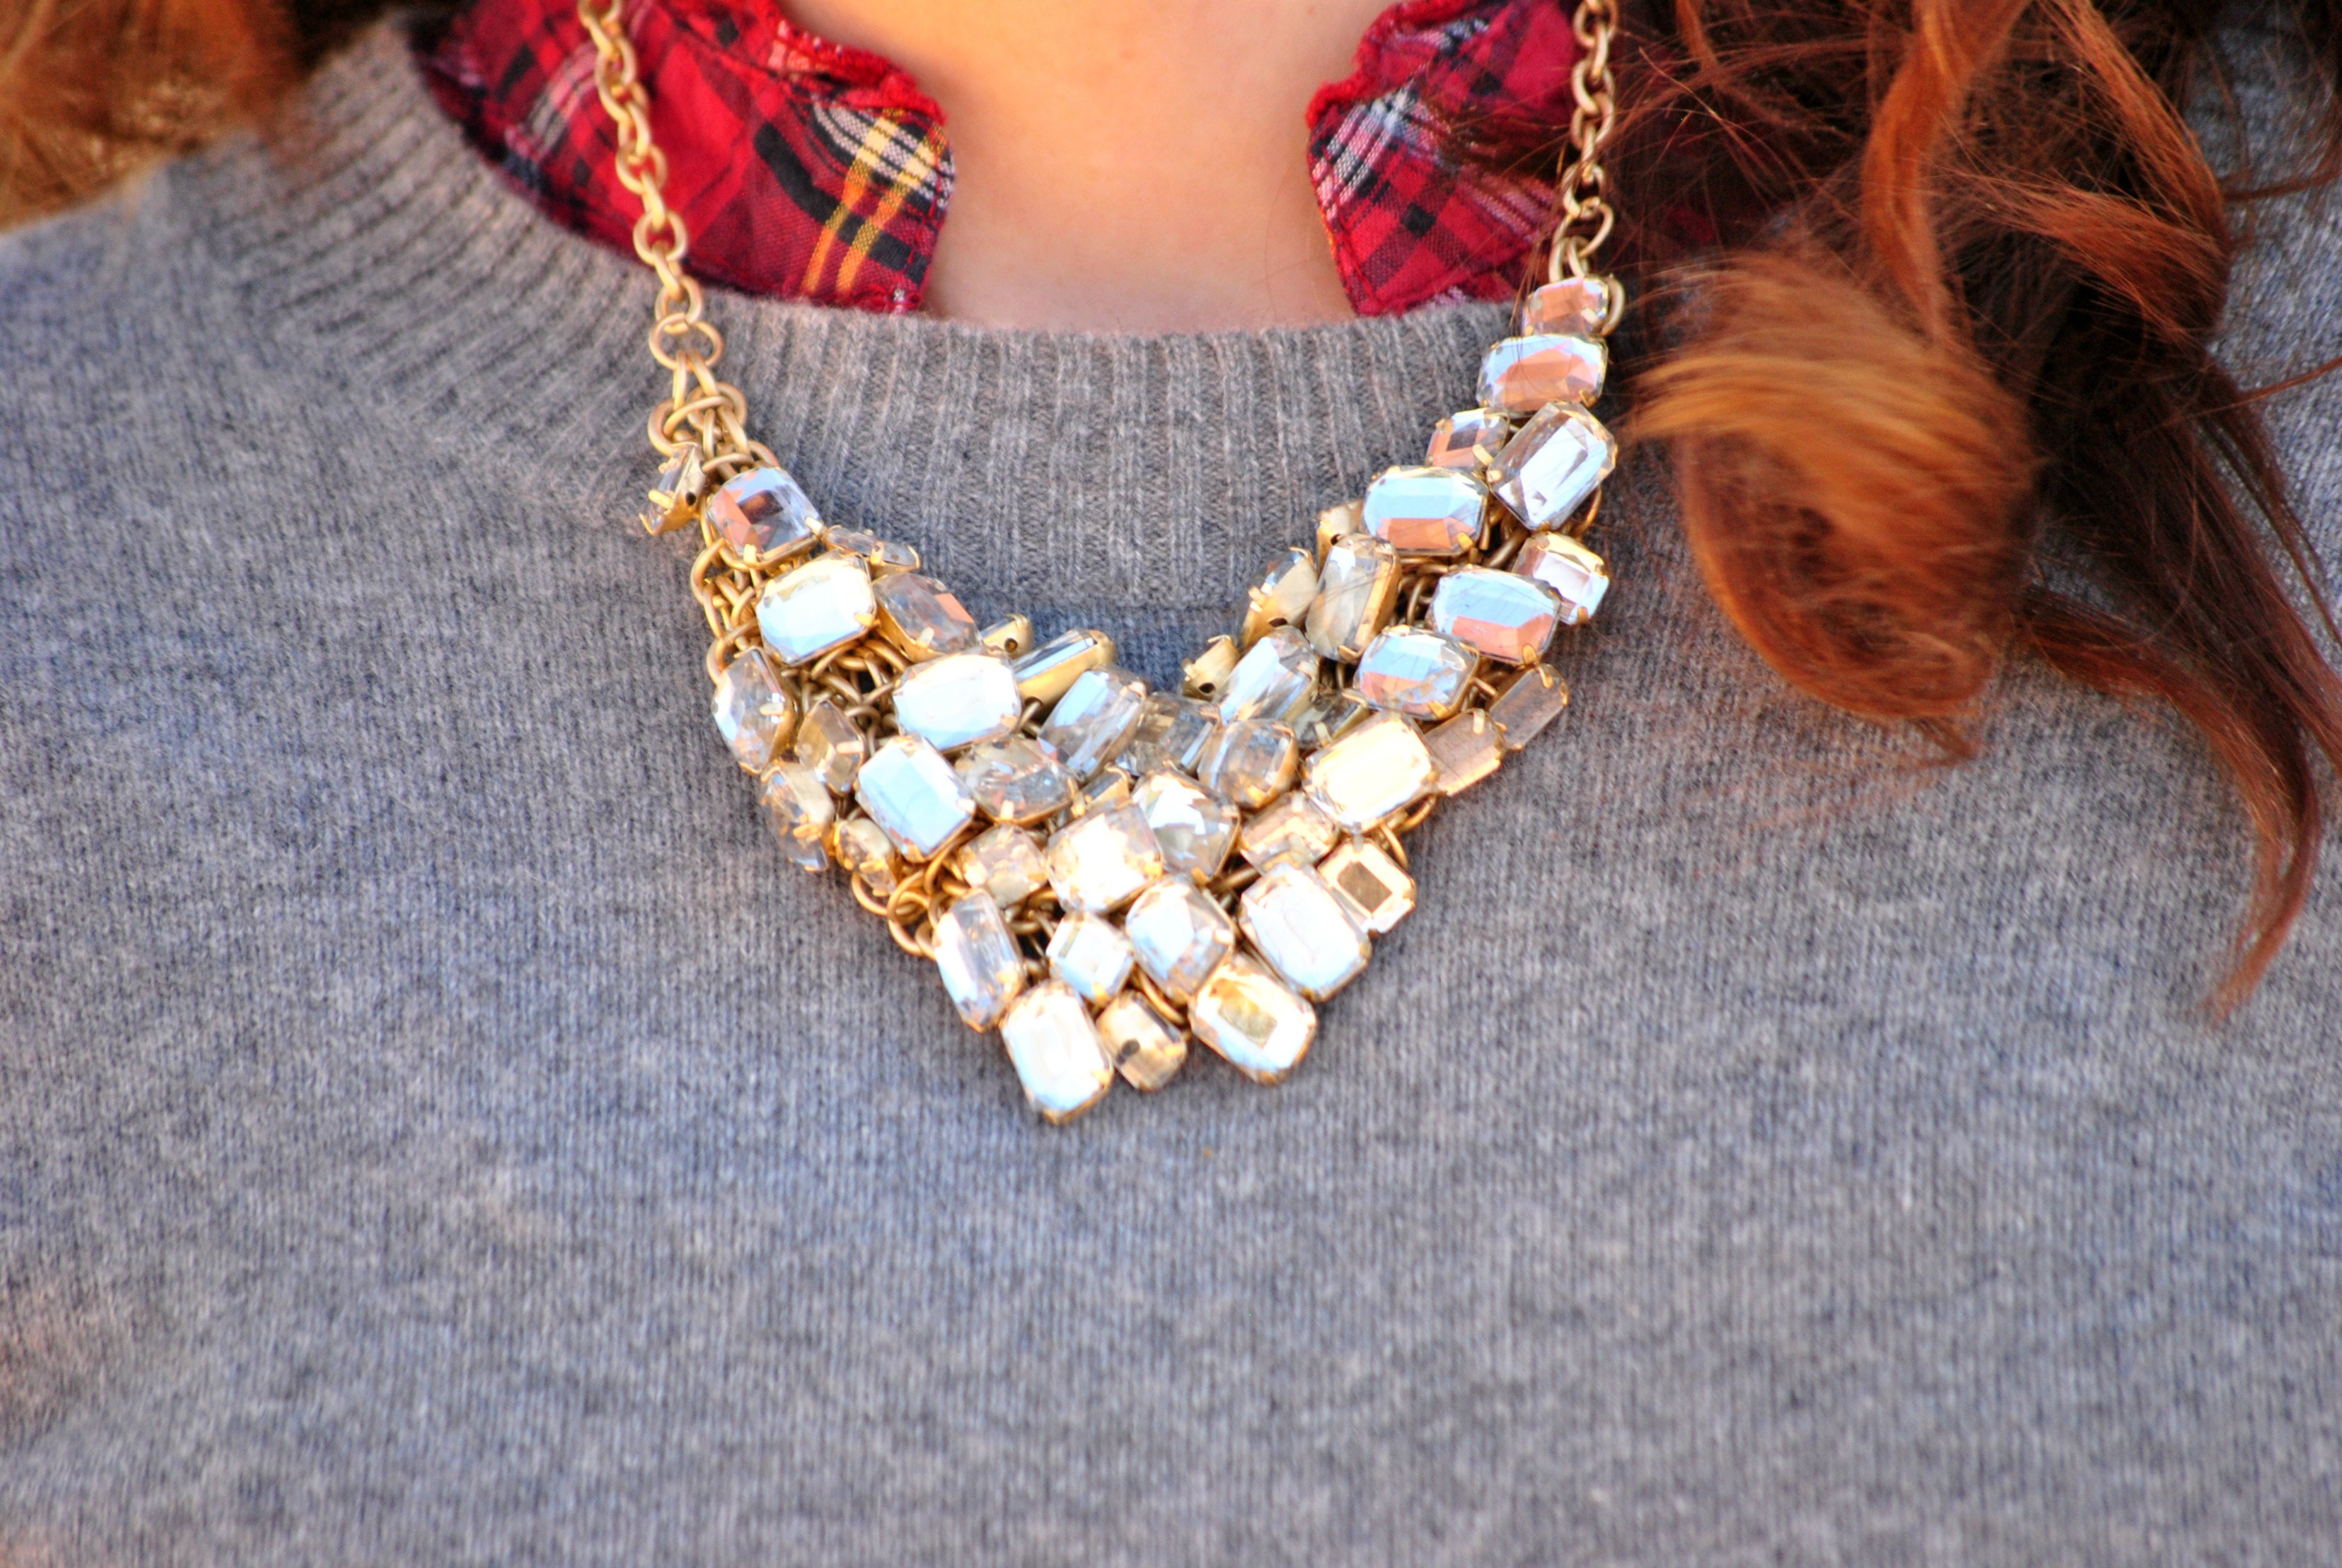 Grey sweater and statement necklace